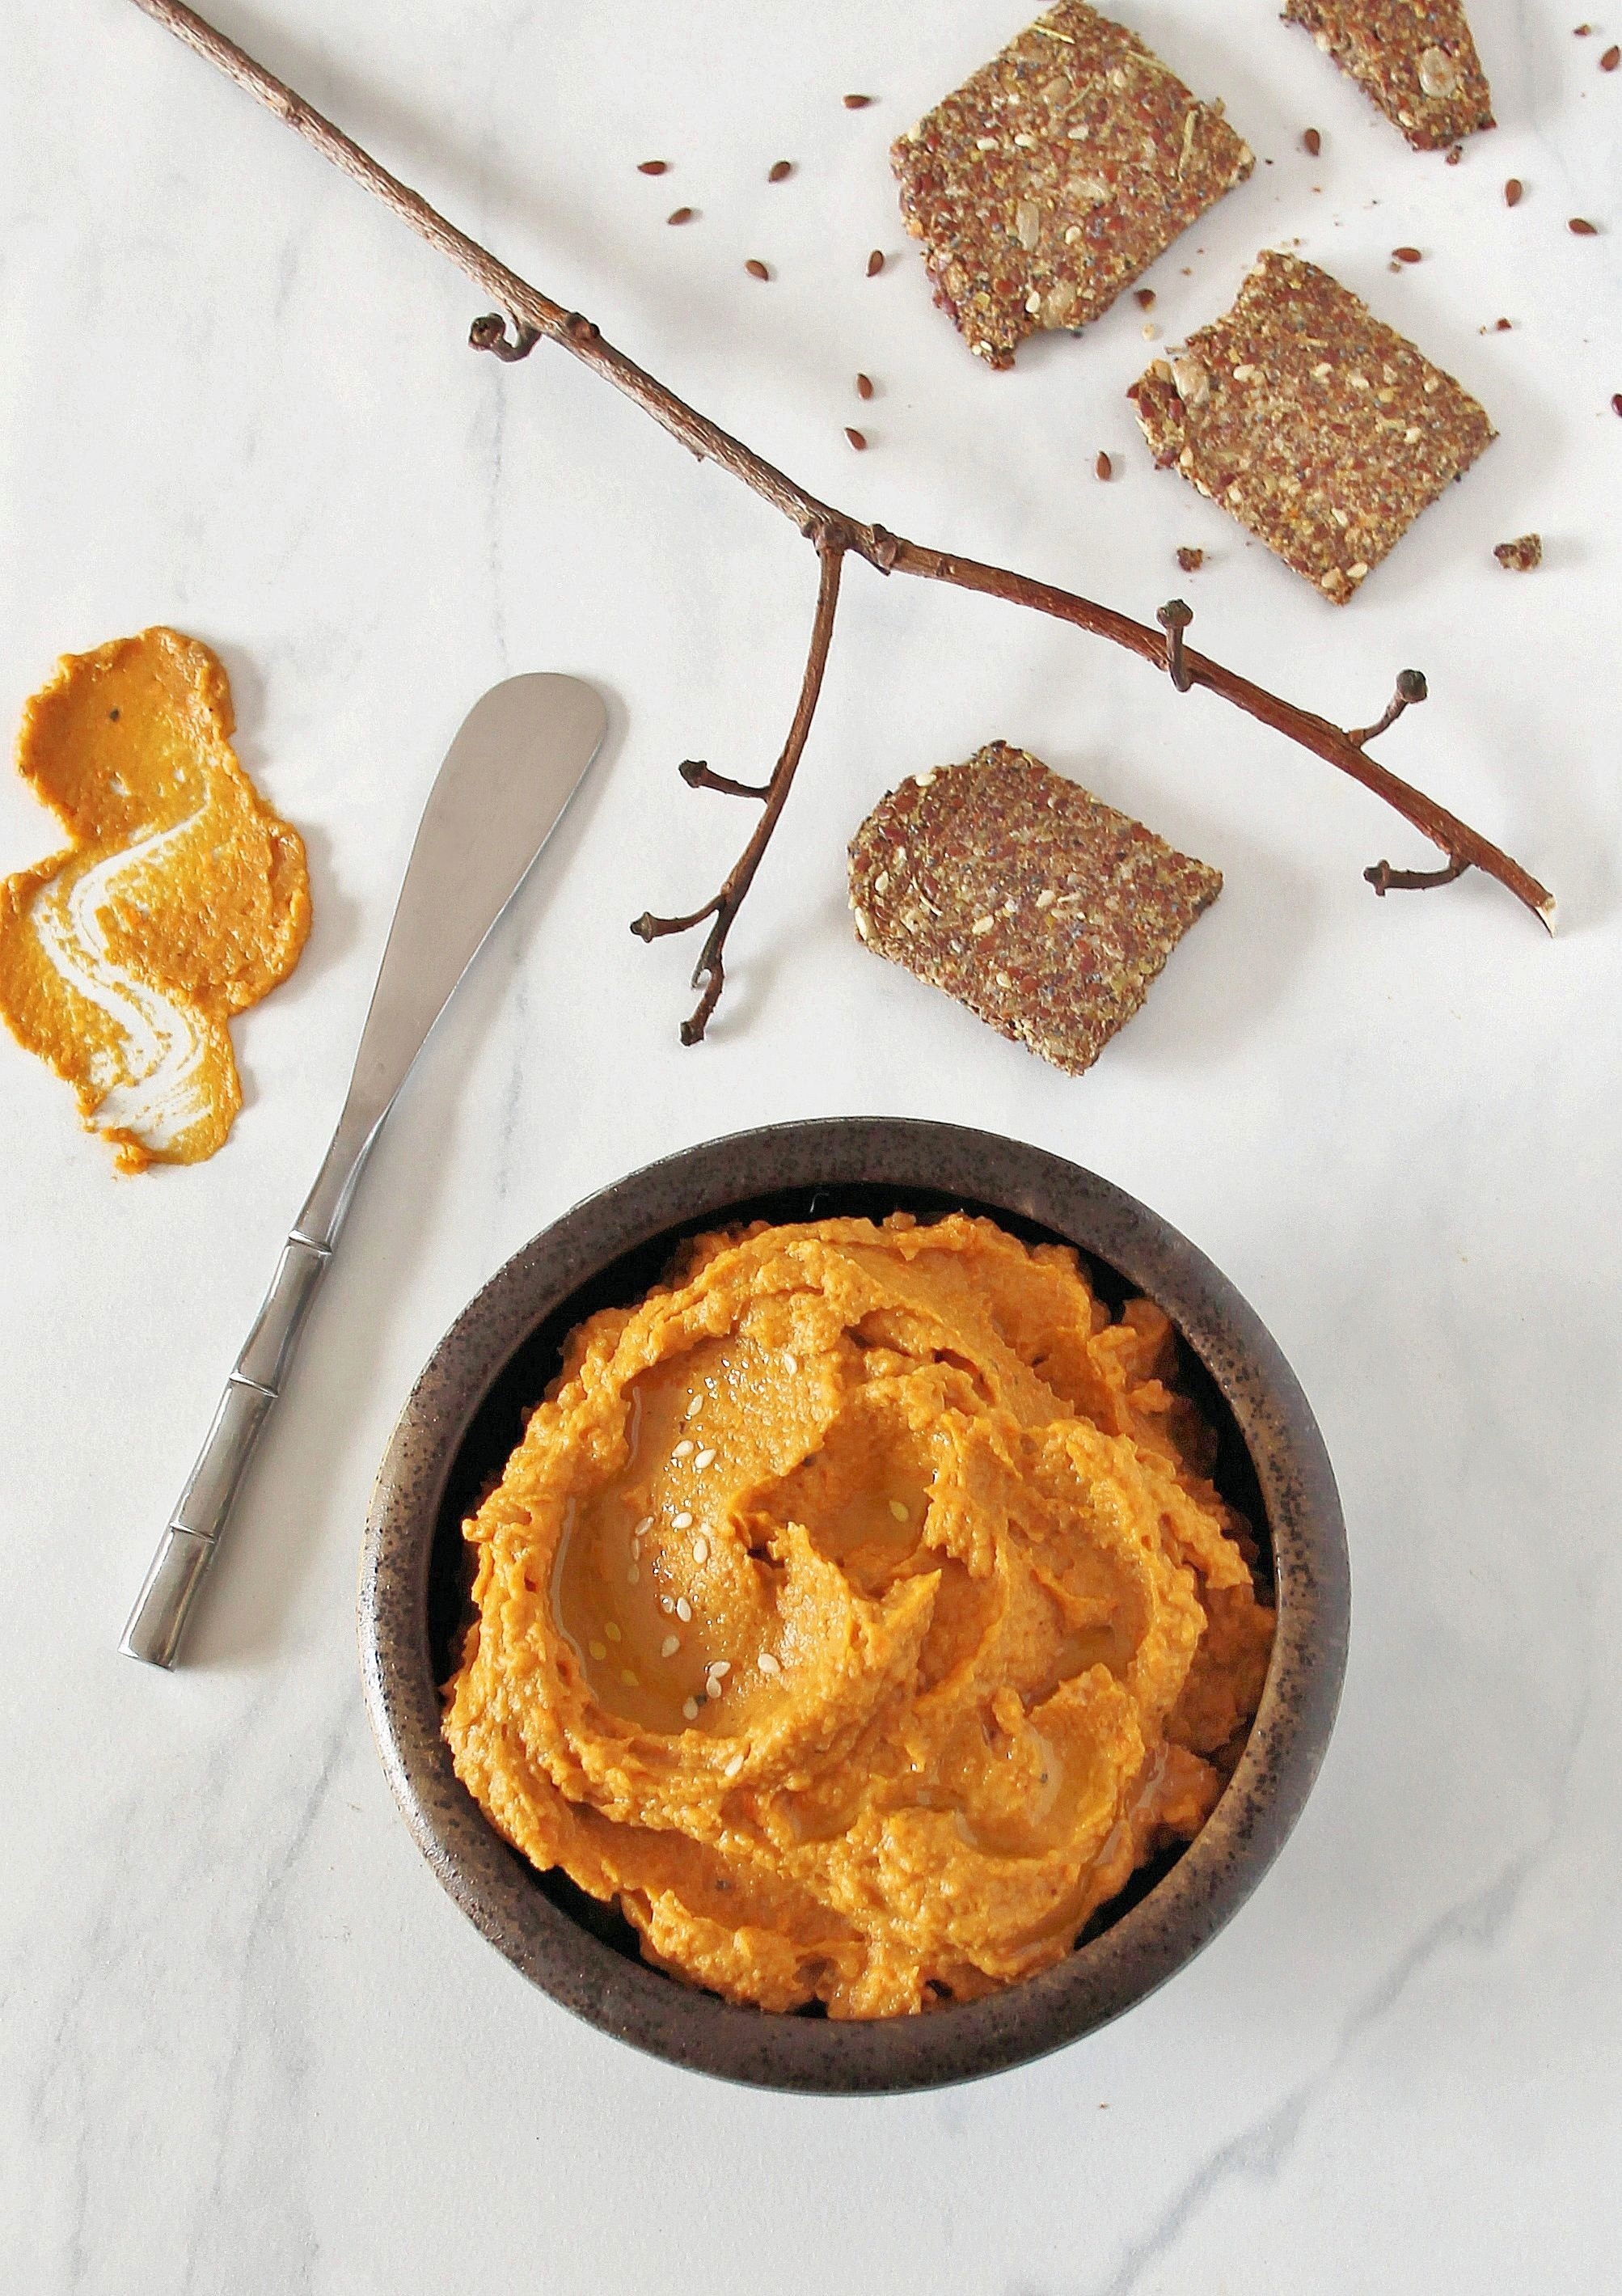 Roasted Sweet Potato & Persimmon Hummus with Almond-Flaxseed Crackers (GF)